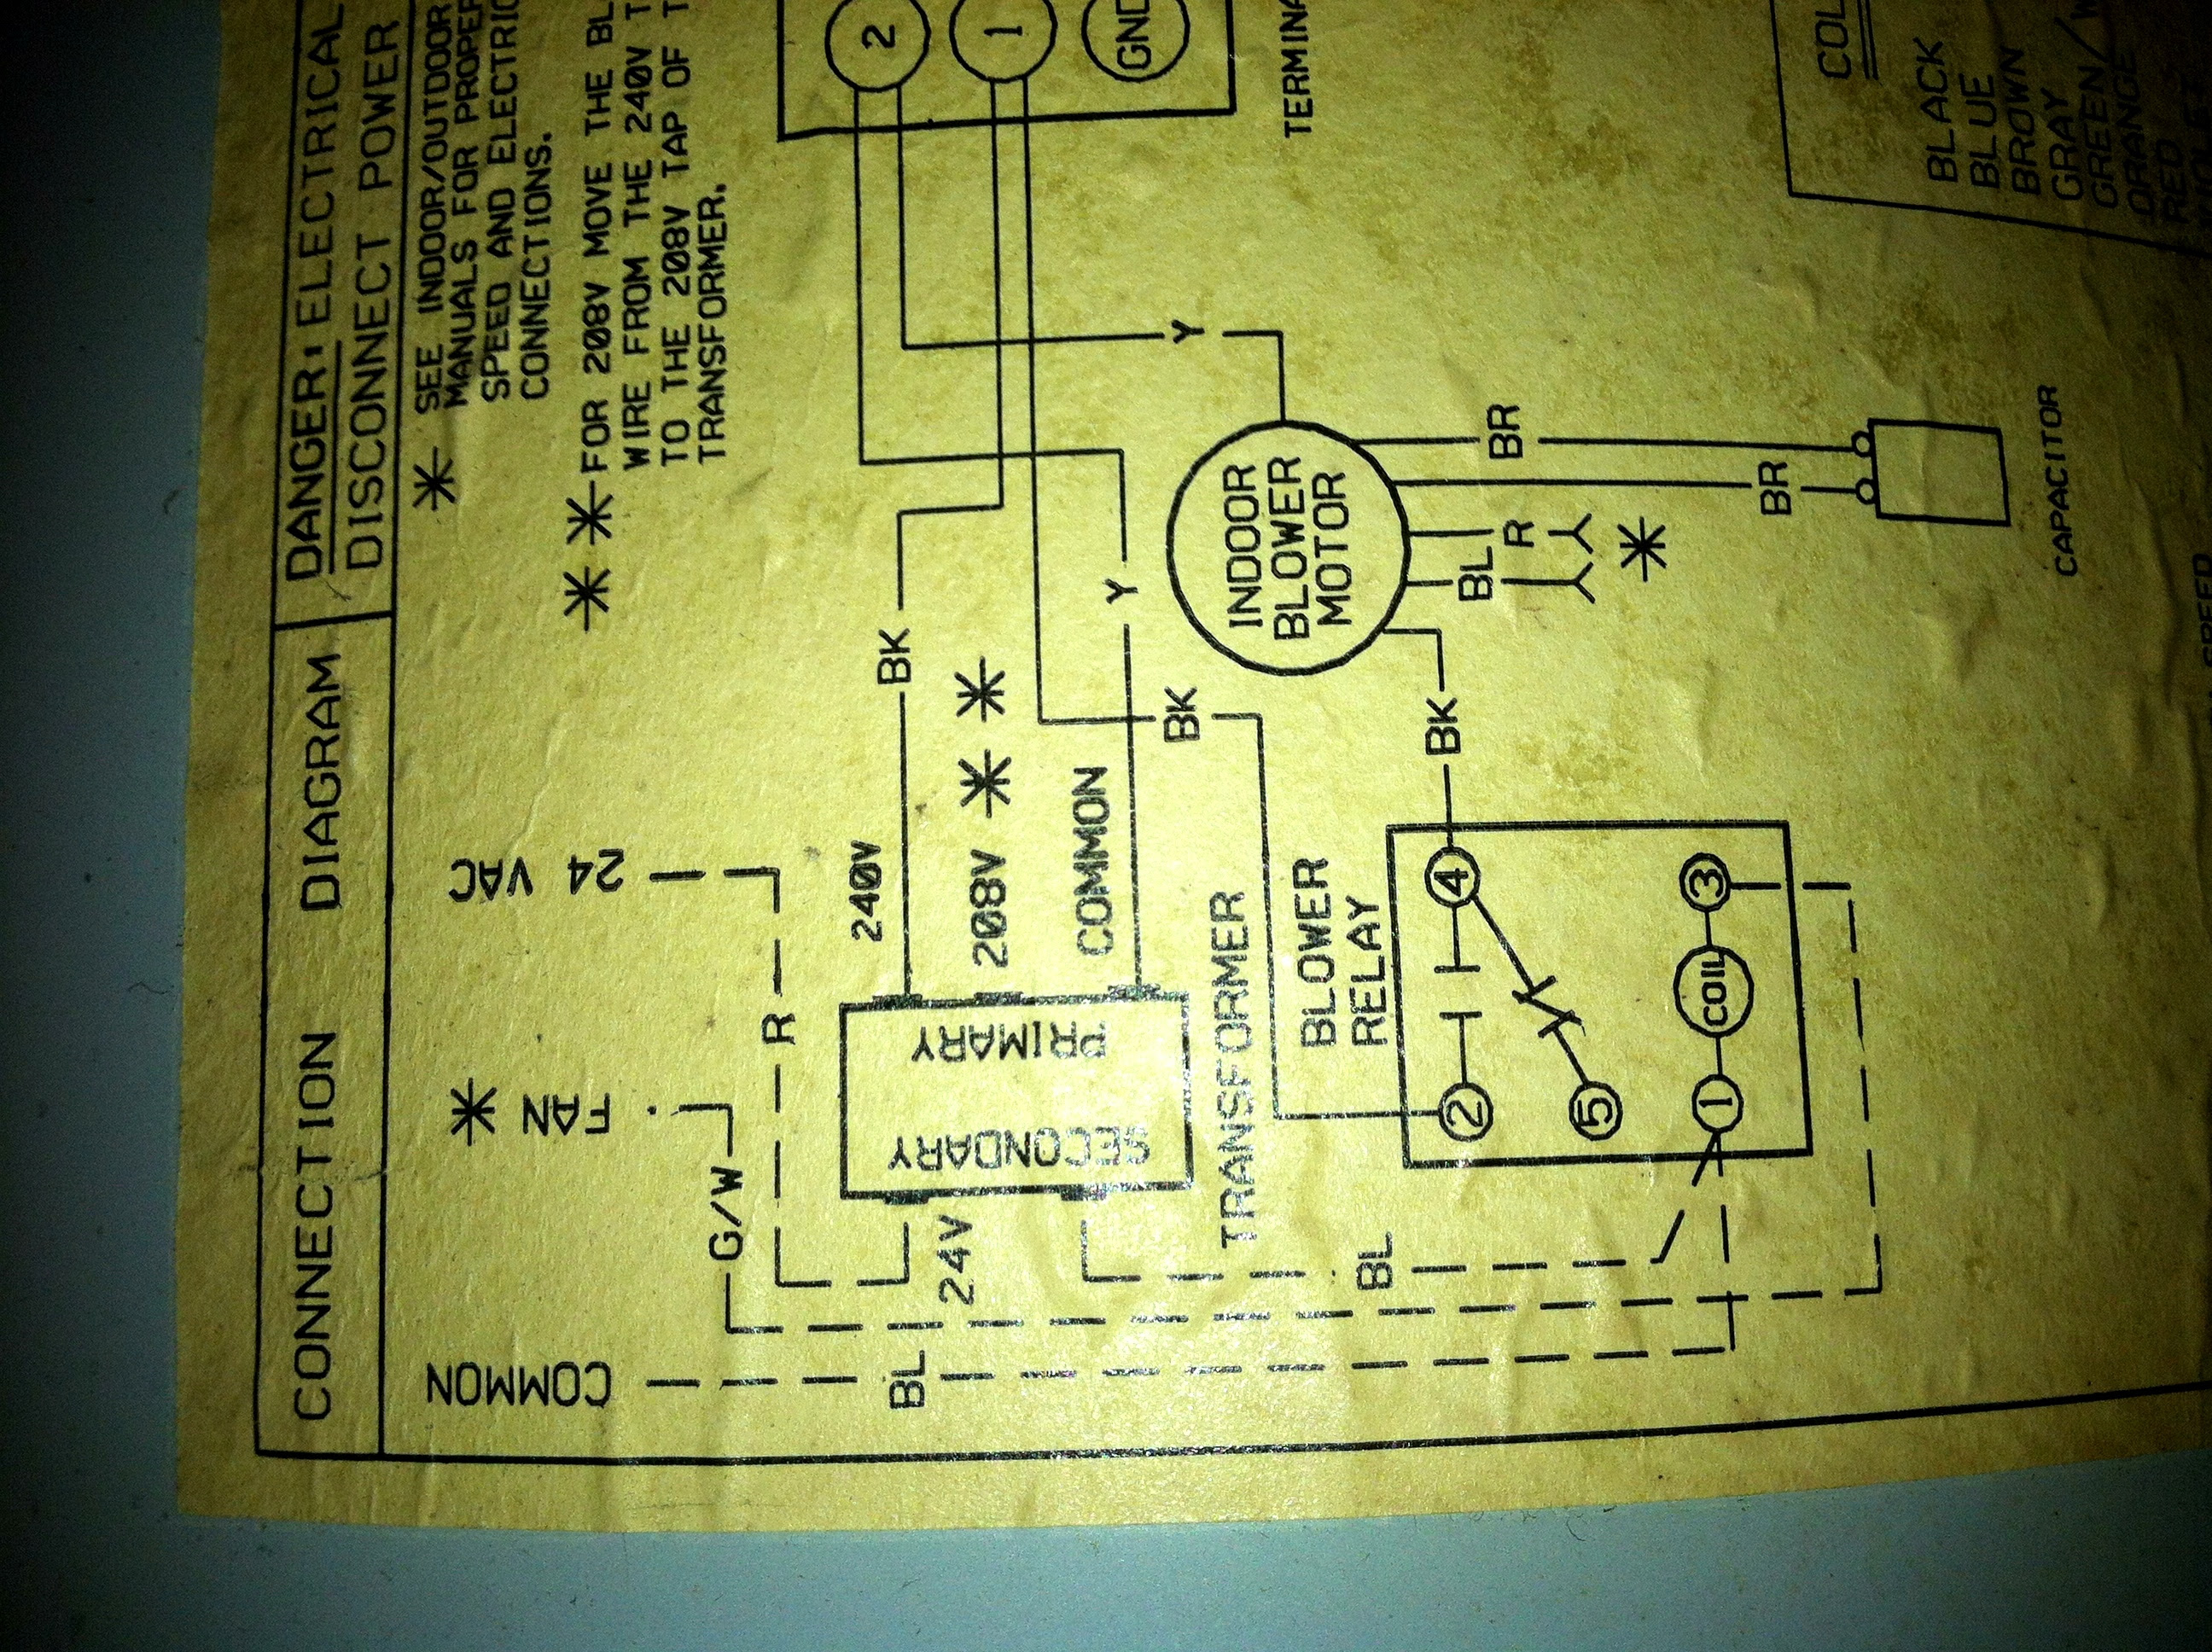 Nordyne Heat Pump Wiring Diagram from lh5.googleusercontent.com